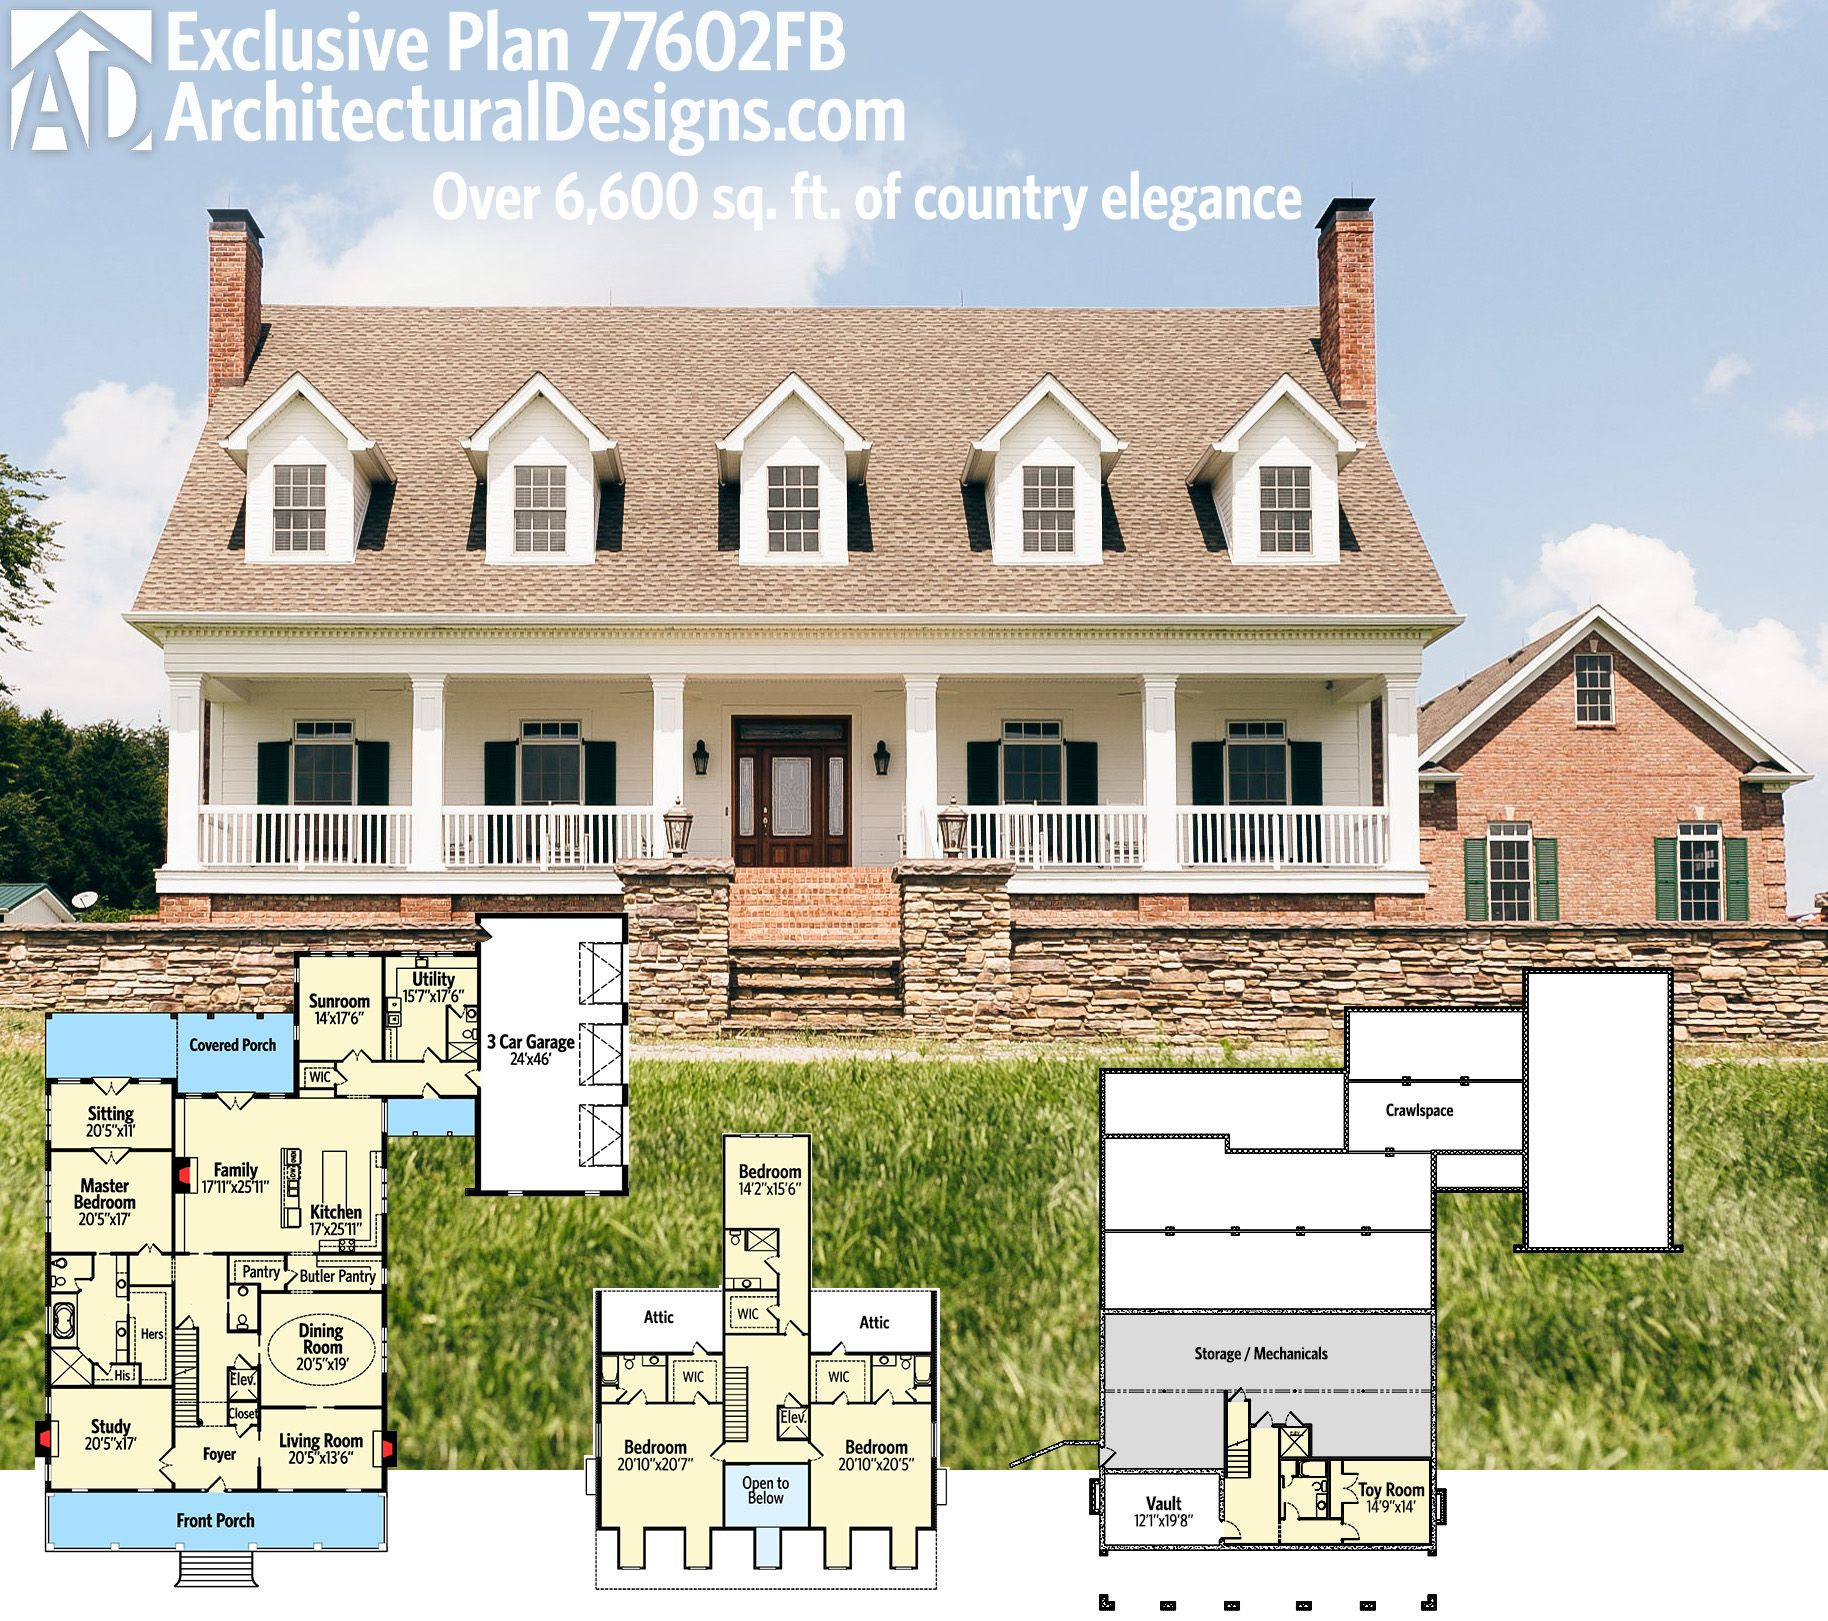 Dream Home Designs: Plan 77602FB: Exclusive 4 Bed Country Dream Home Plan